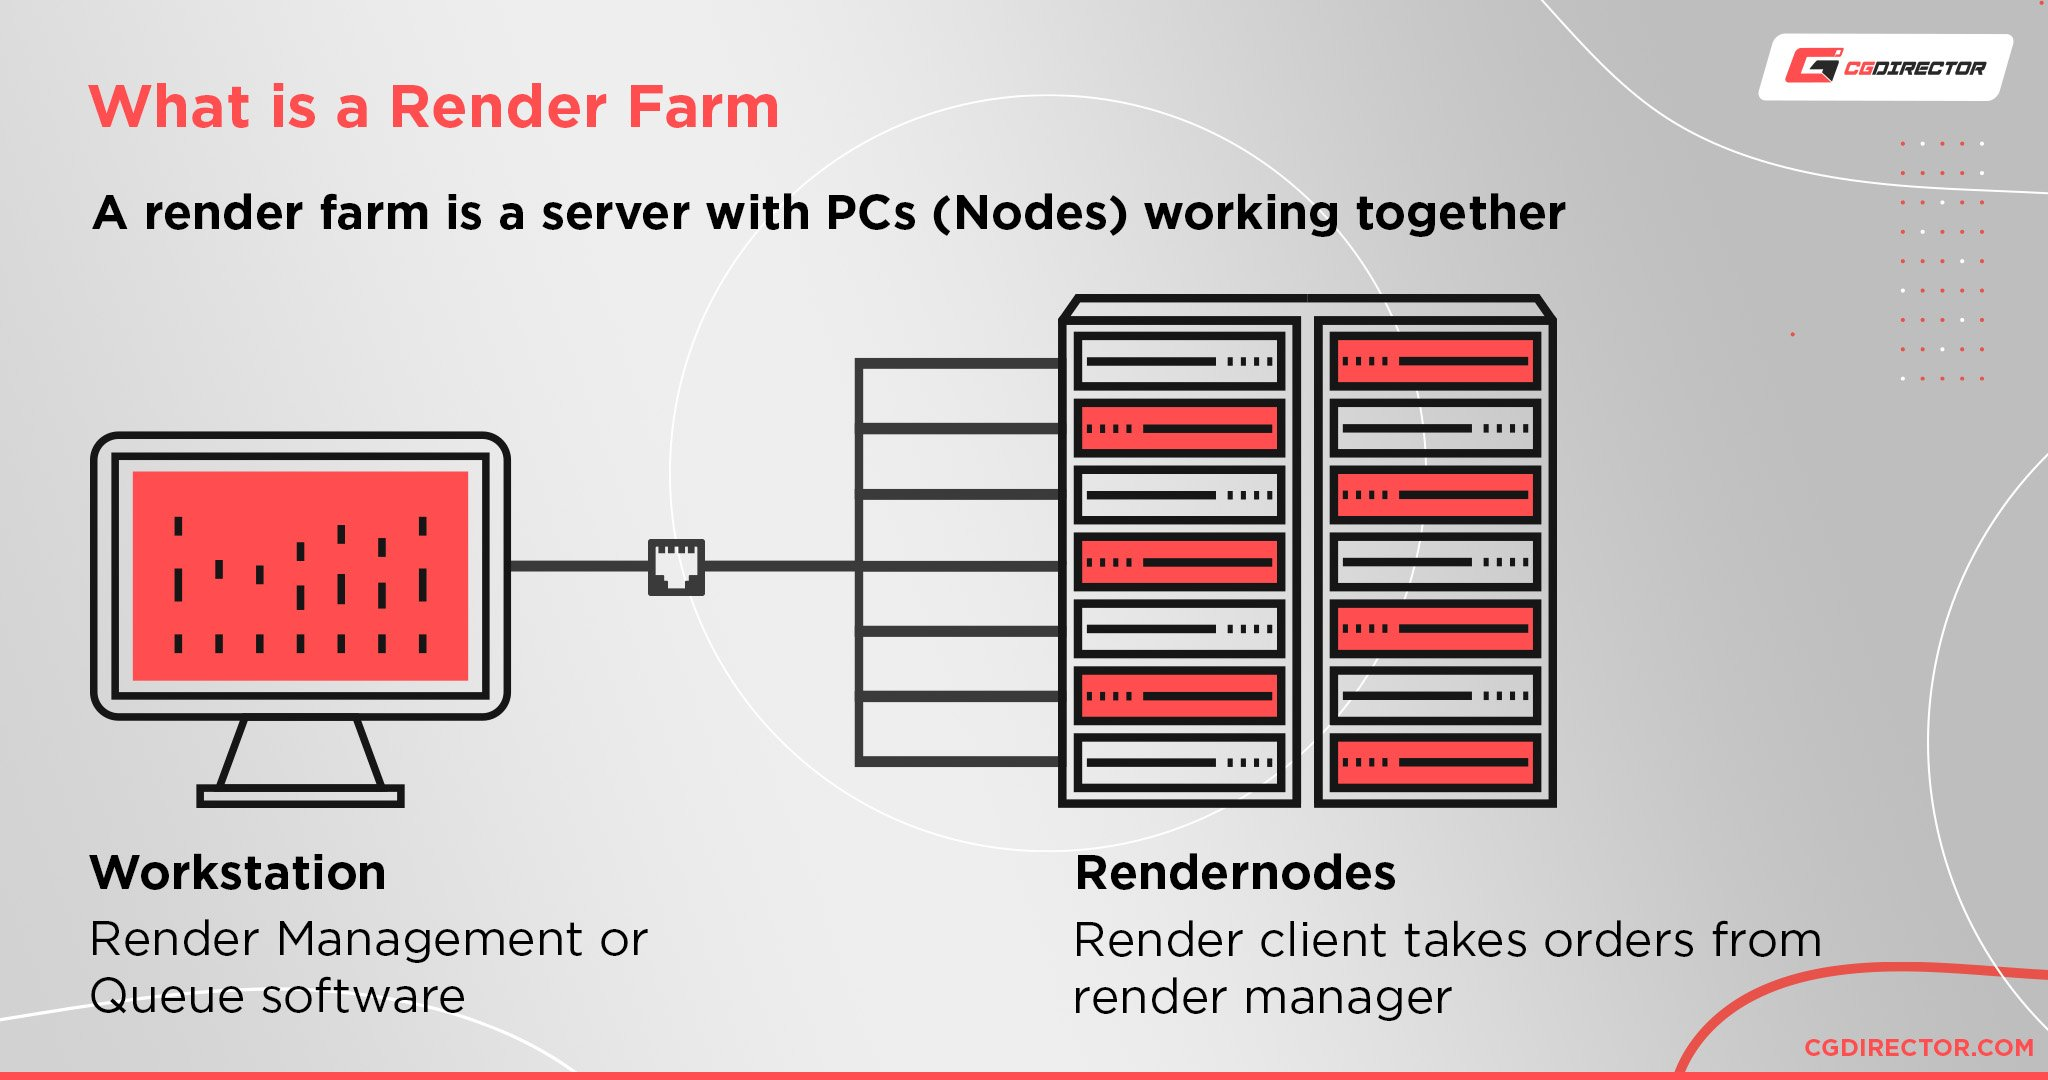 What is a render farm